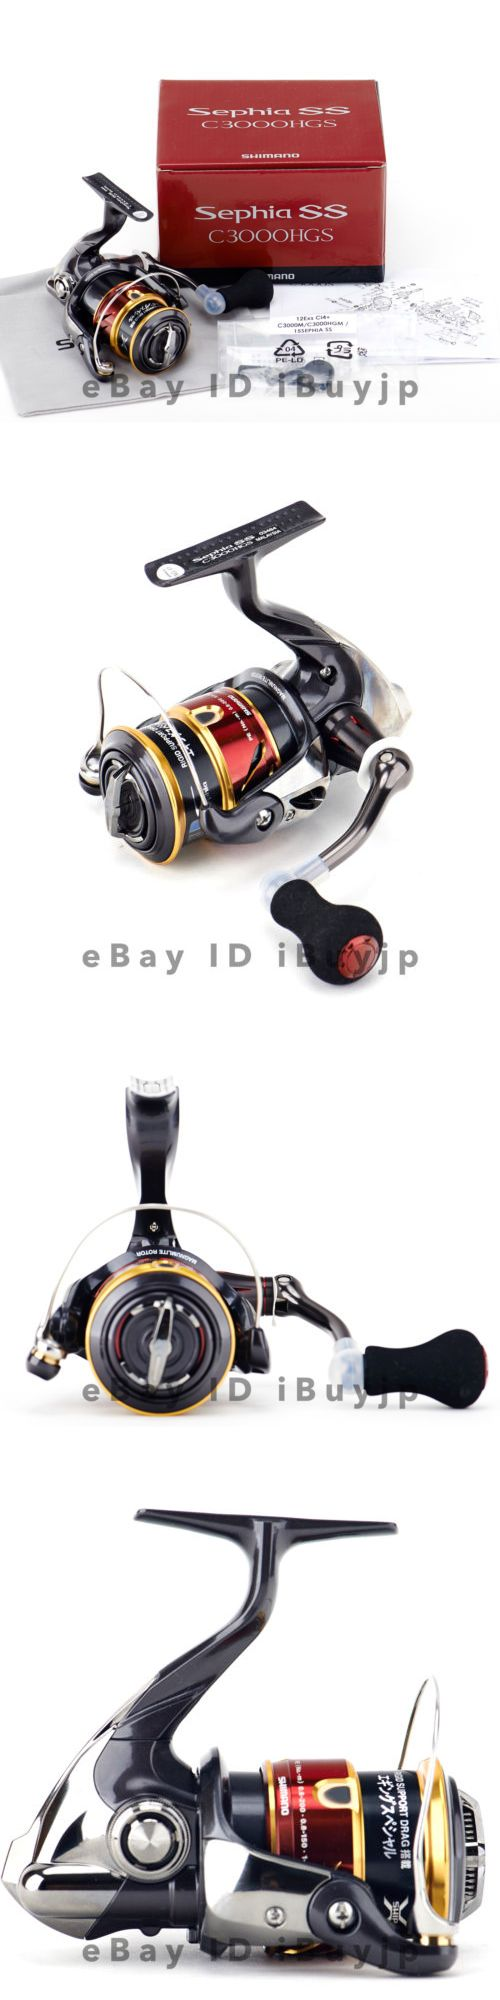 Spinning Reels 36147: Shimano 15 Sephia Ss C3000hgs Saltwater Spinning Reel 034847 -> BUY IT NOW ONLY: $173.5 on eBay!